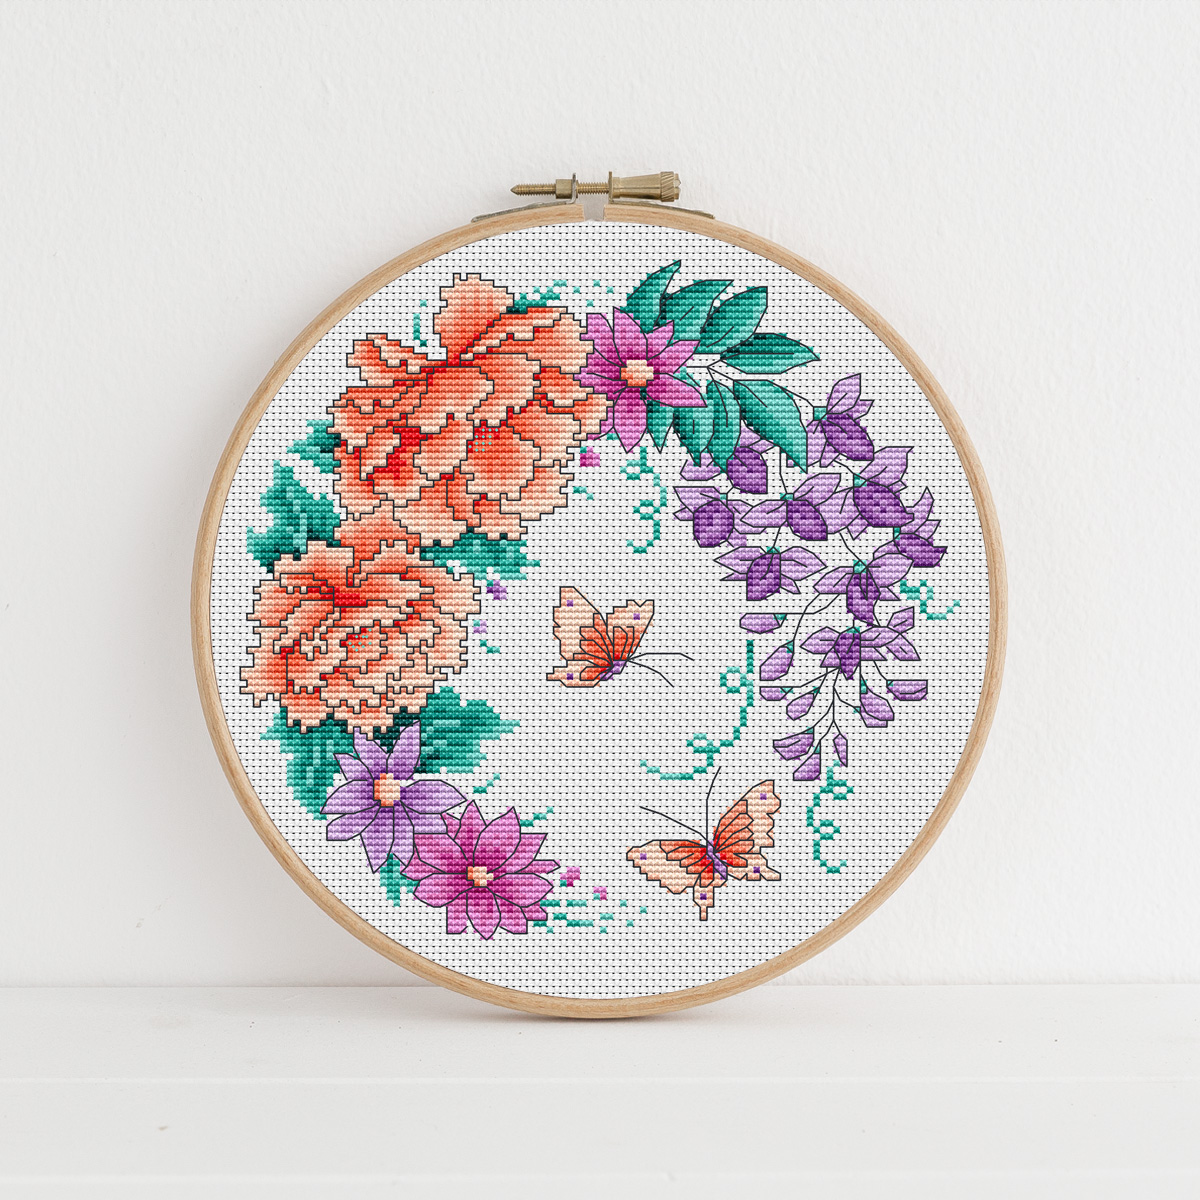 Floral & nature cross stitch patterns by Lucie Heaton Cross Stitch Designs